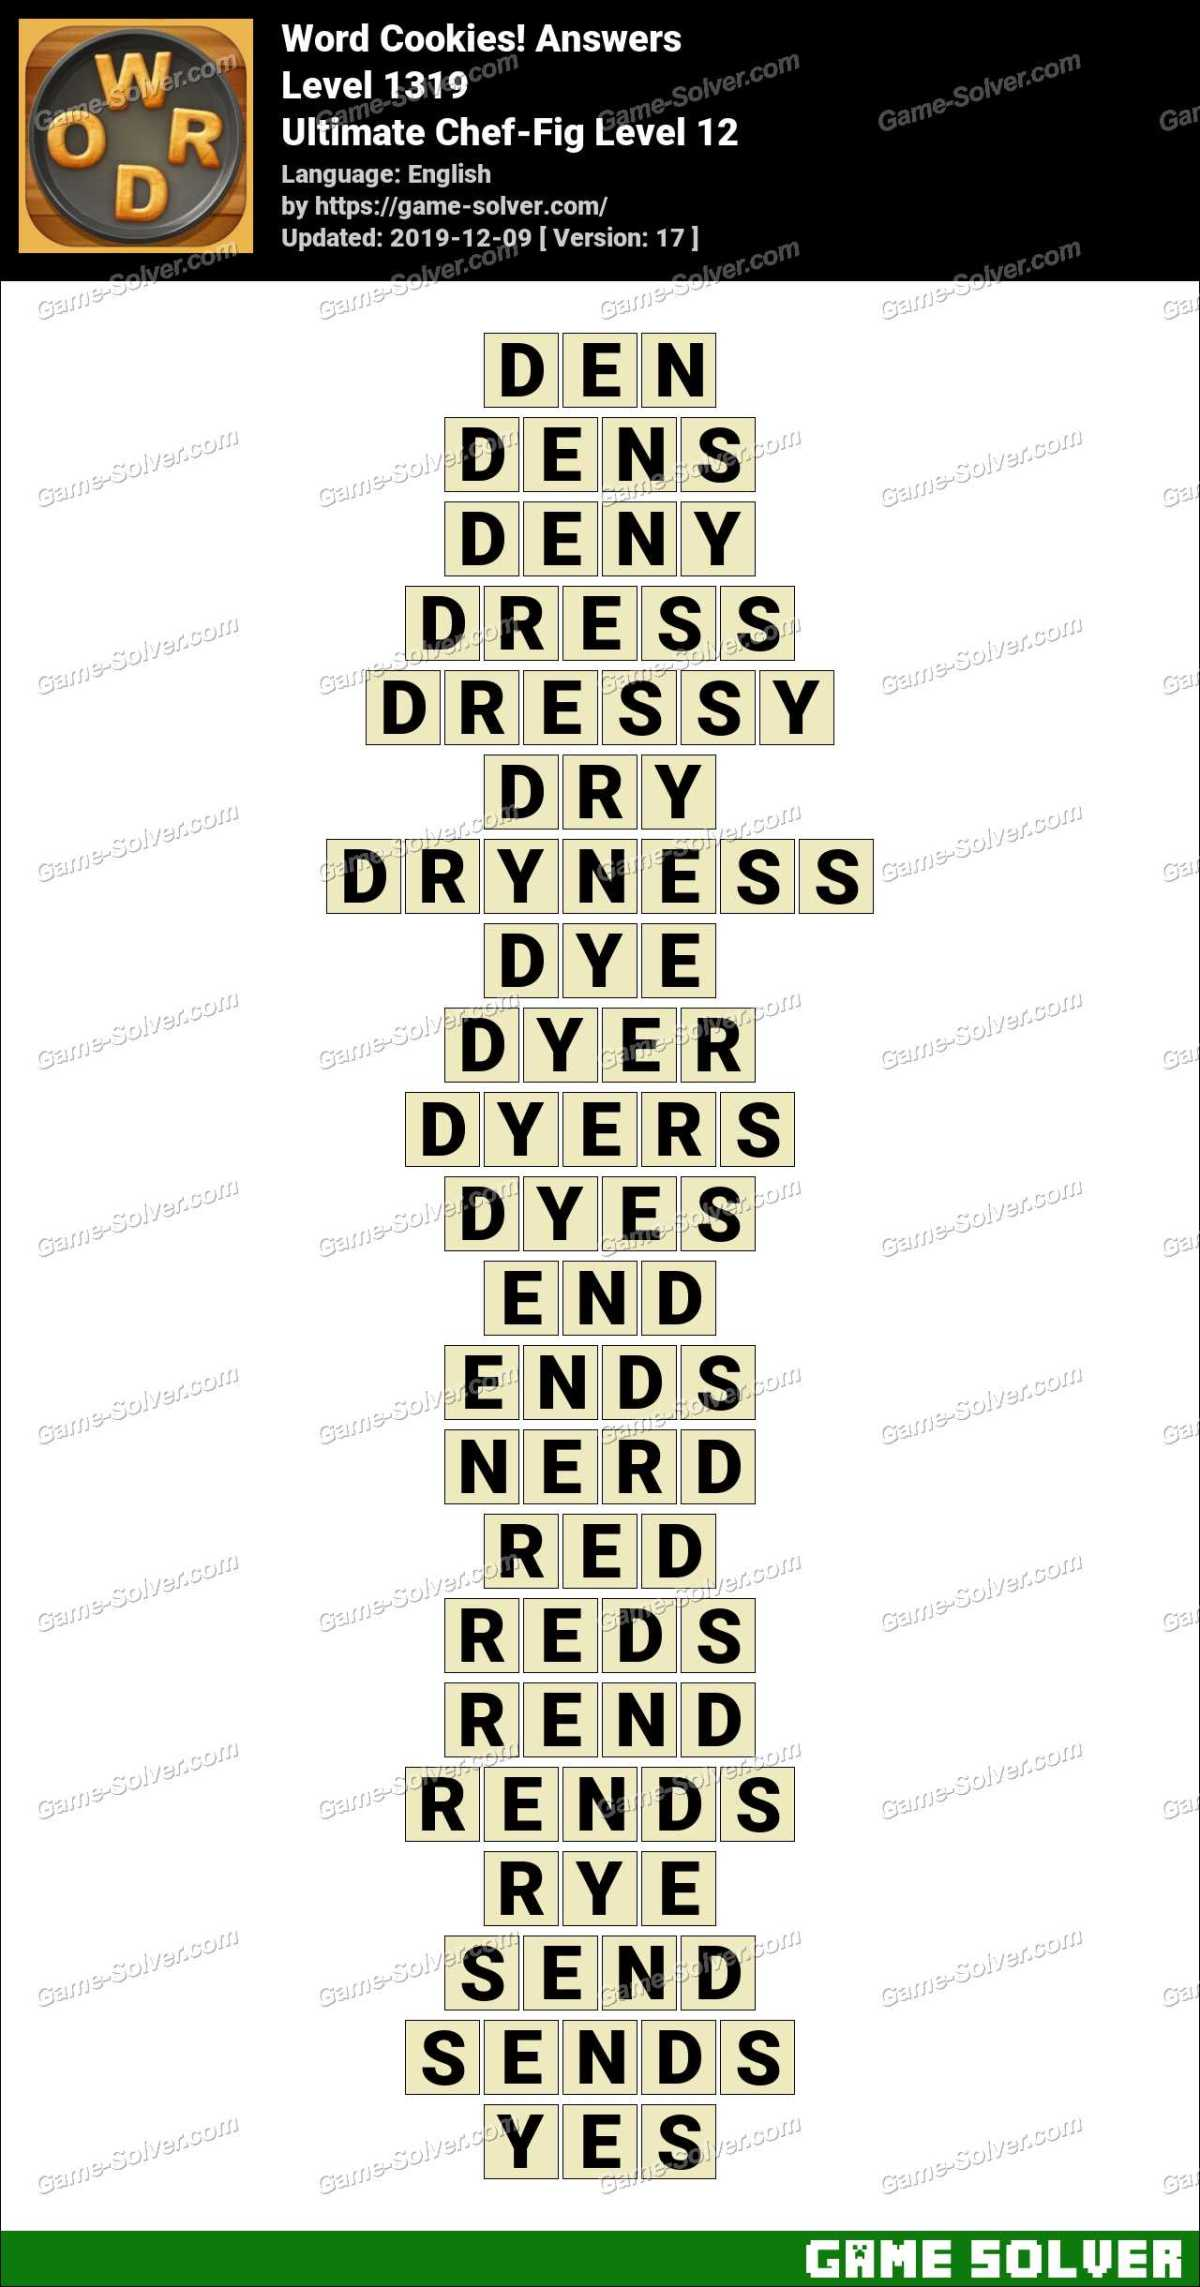 Word Cookies Ultimate Chef-Fig Level 12 Answers